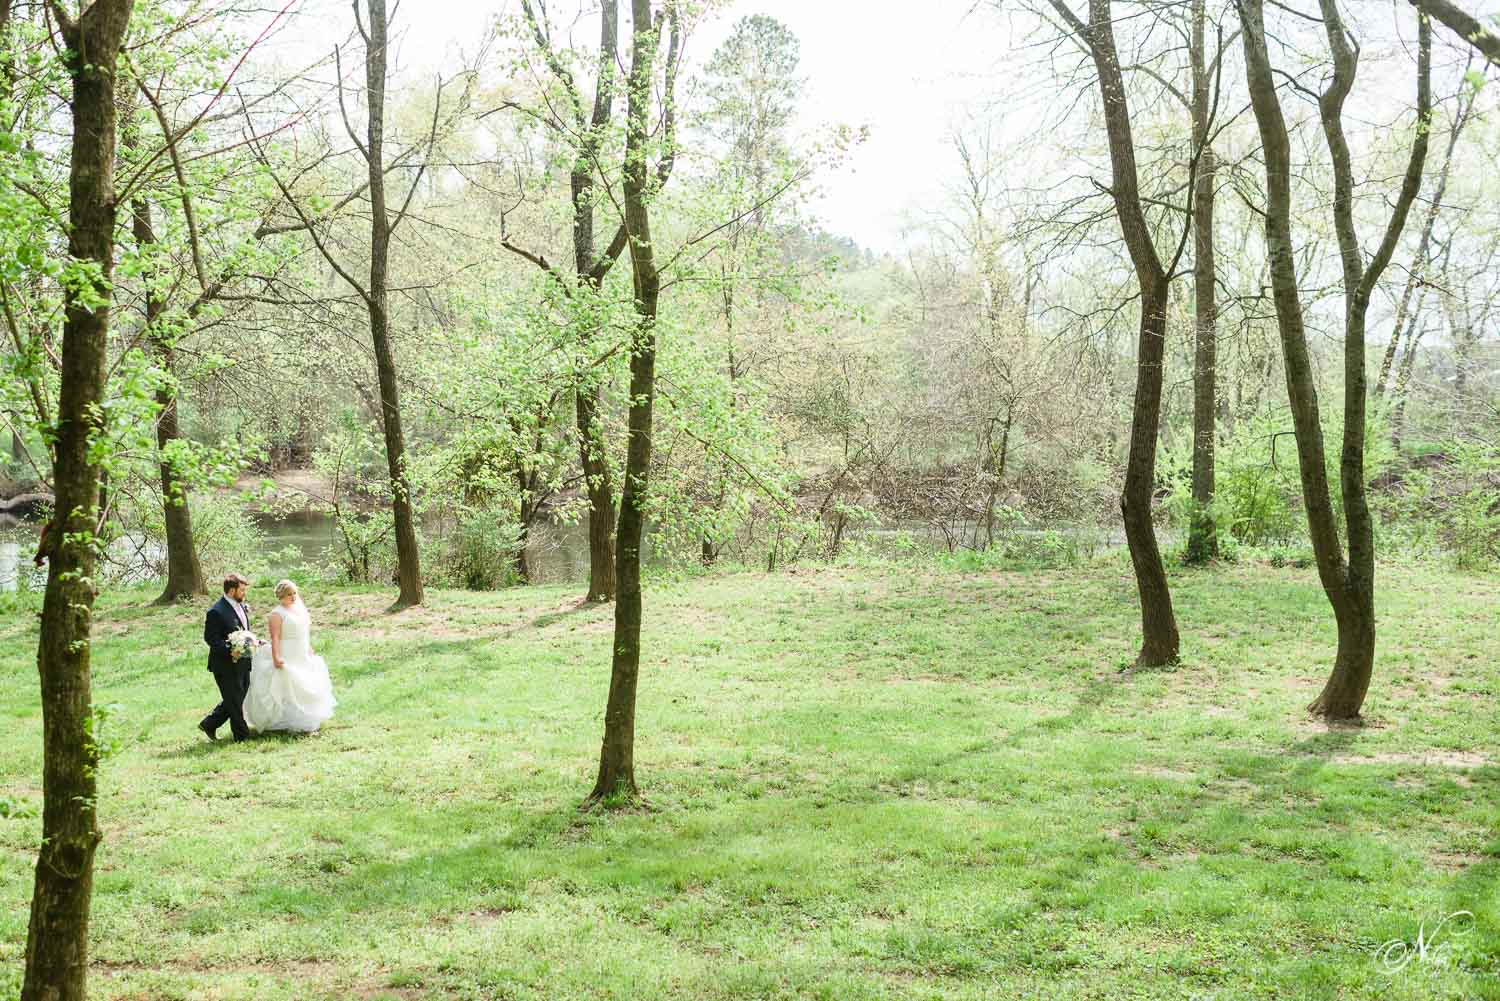 little tiny bride and groom walking through big bright green early spring trees near Chattanooga.